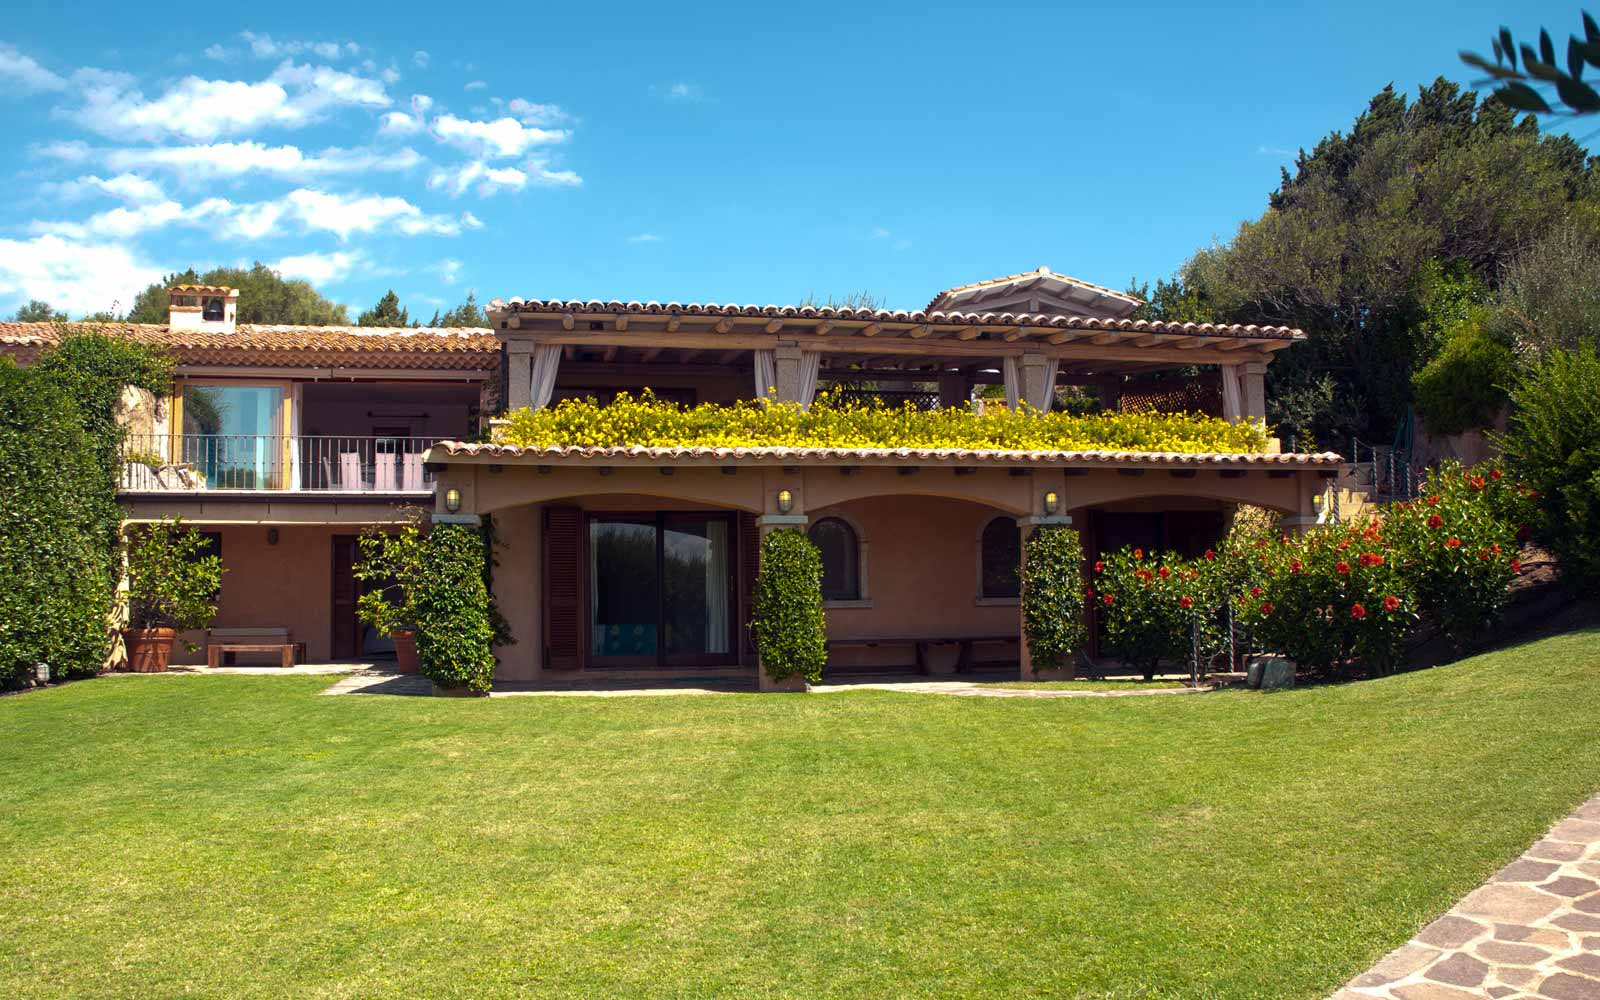 Front view of Villa Pedrabianca